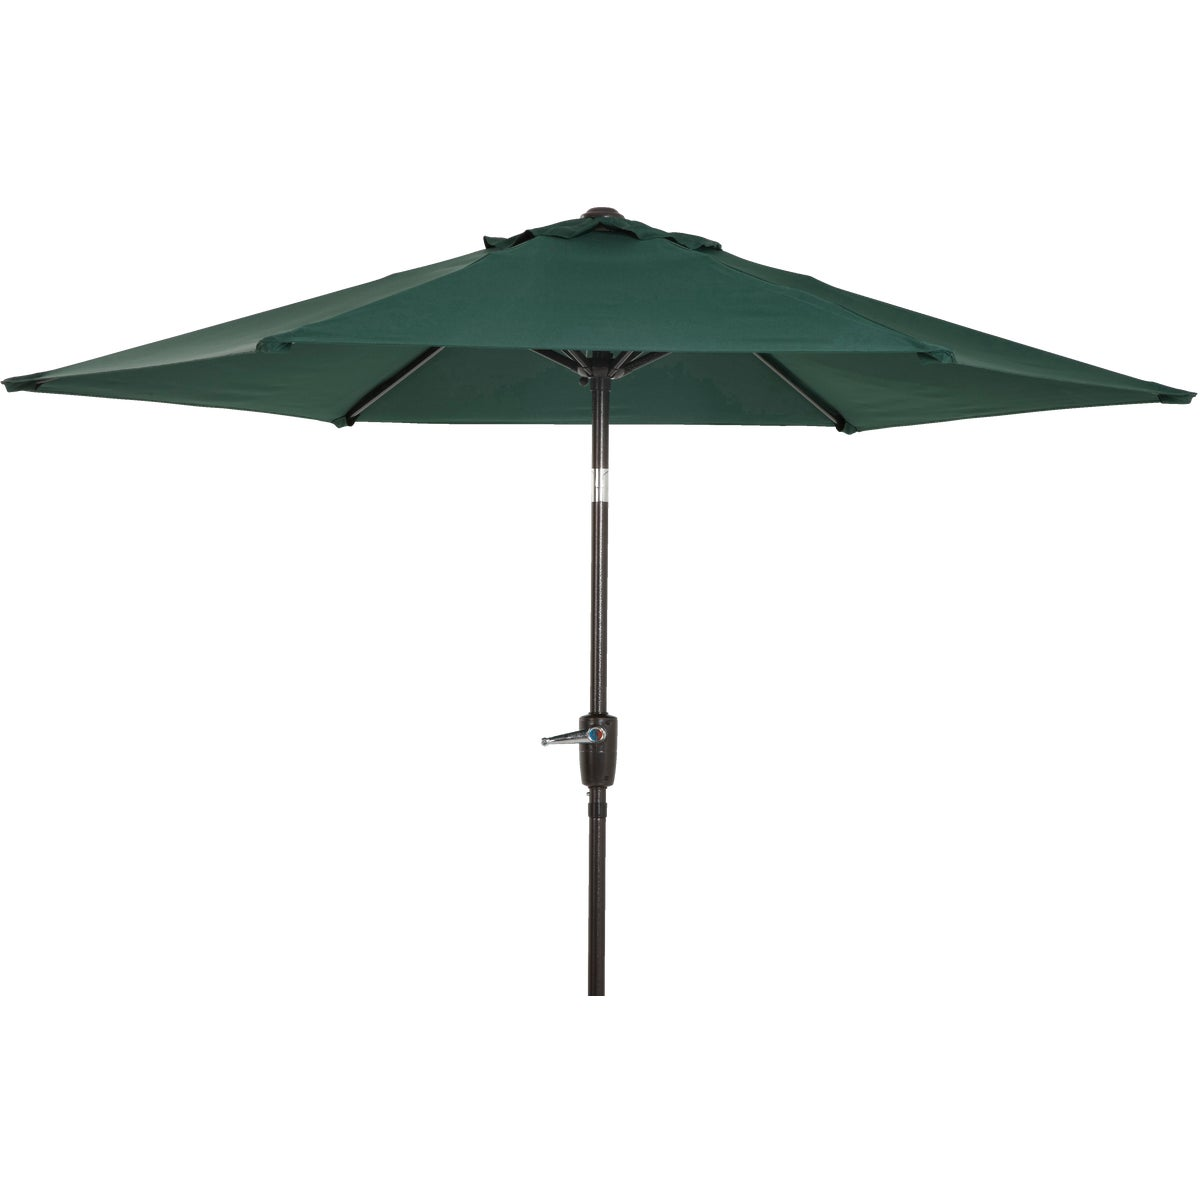 7.5' GREEN UMBRELLA - QD-101-7.5-GRN by Do it Best